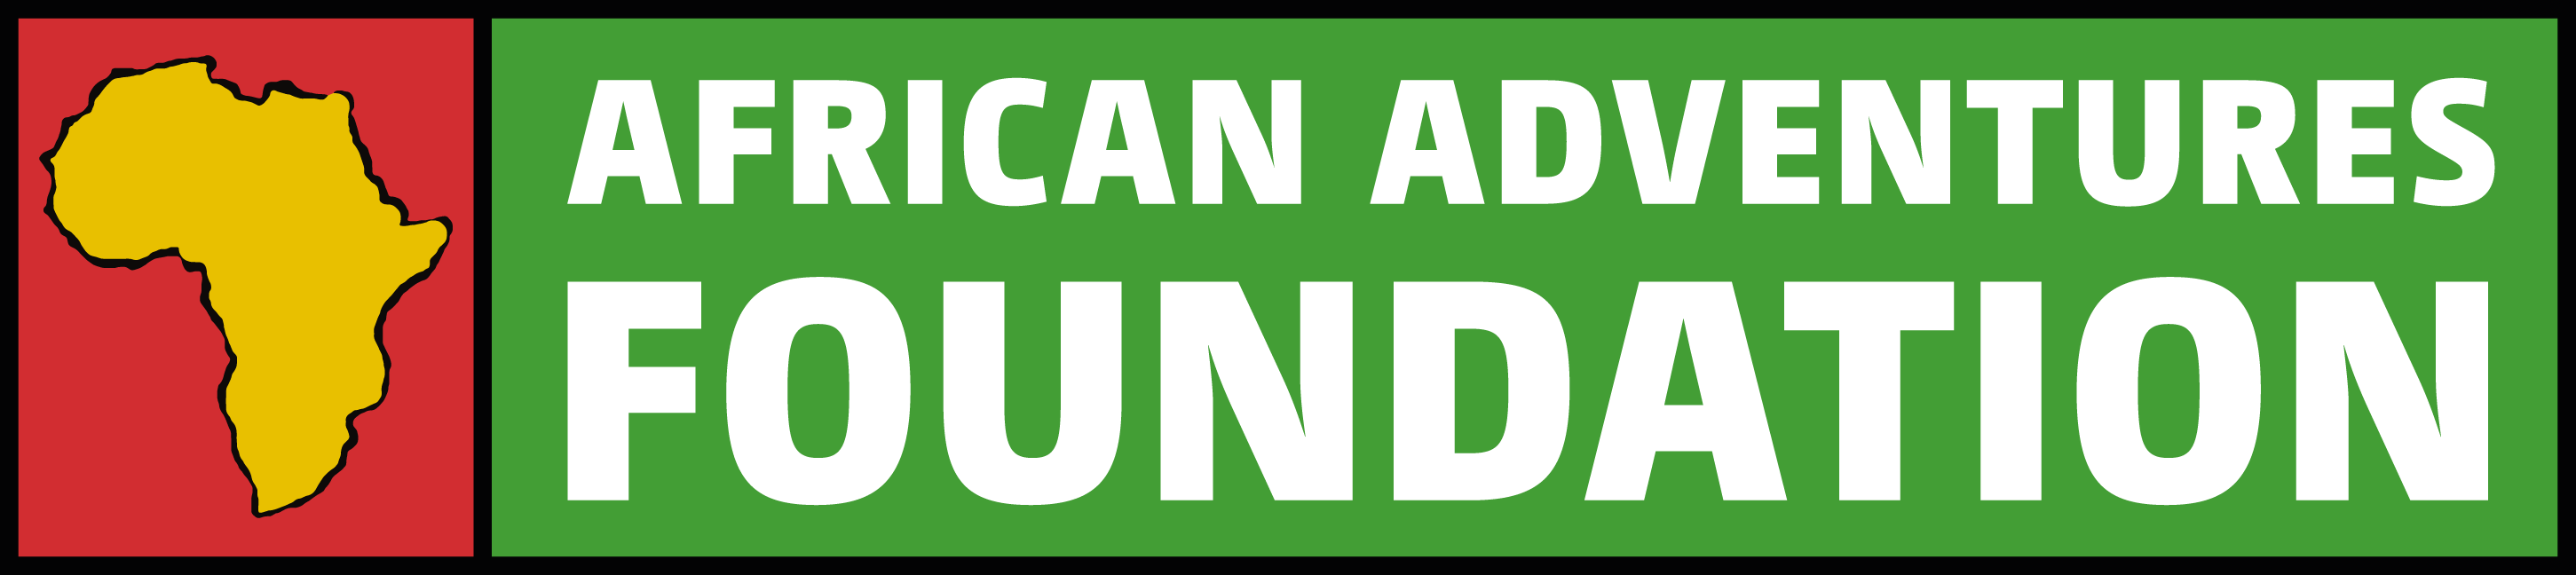 African Adventures Foundation